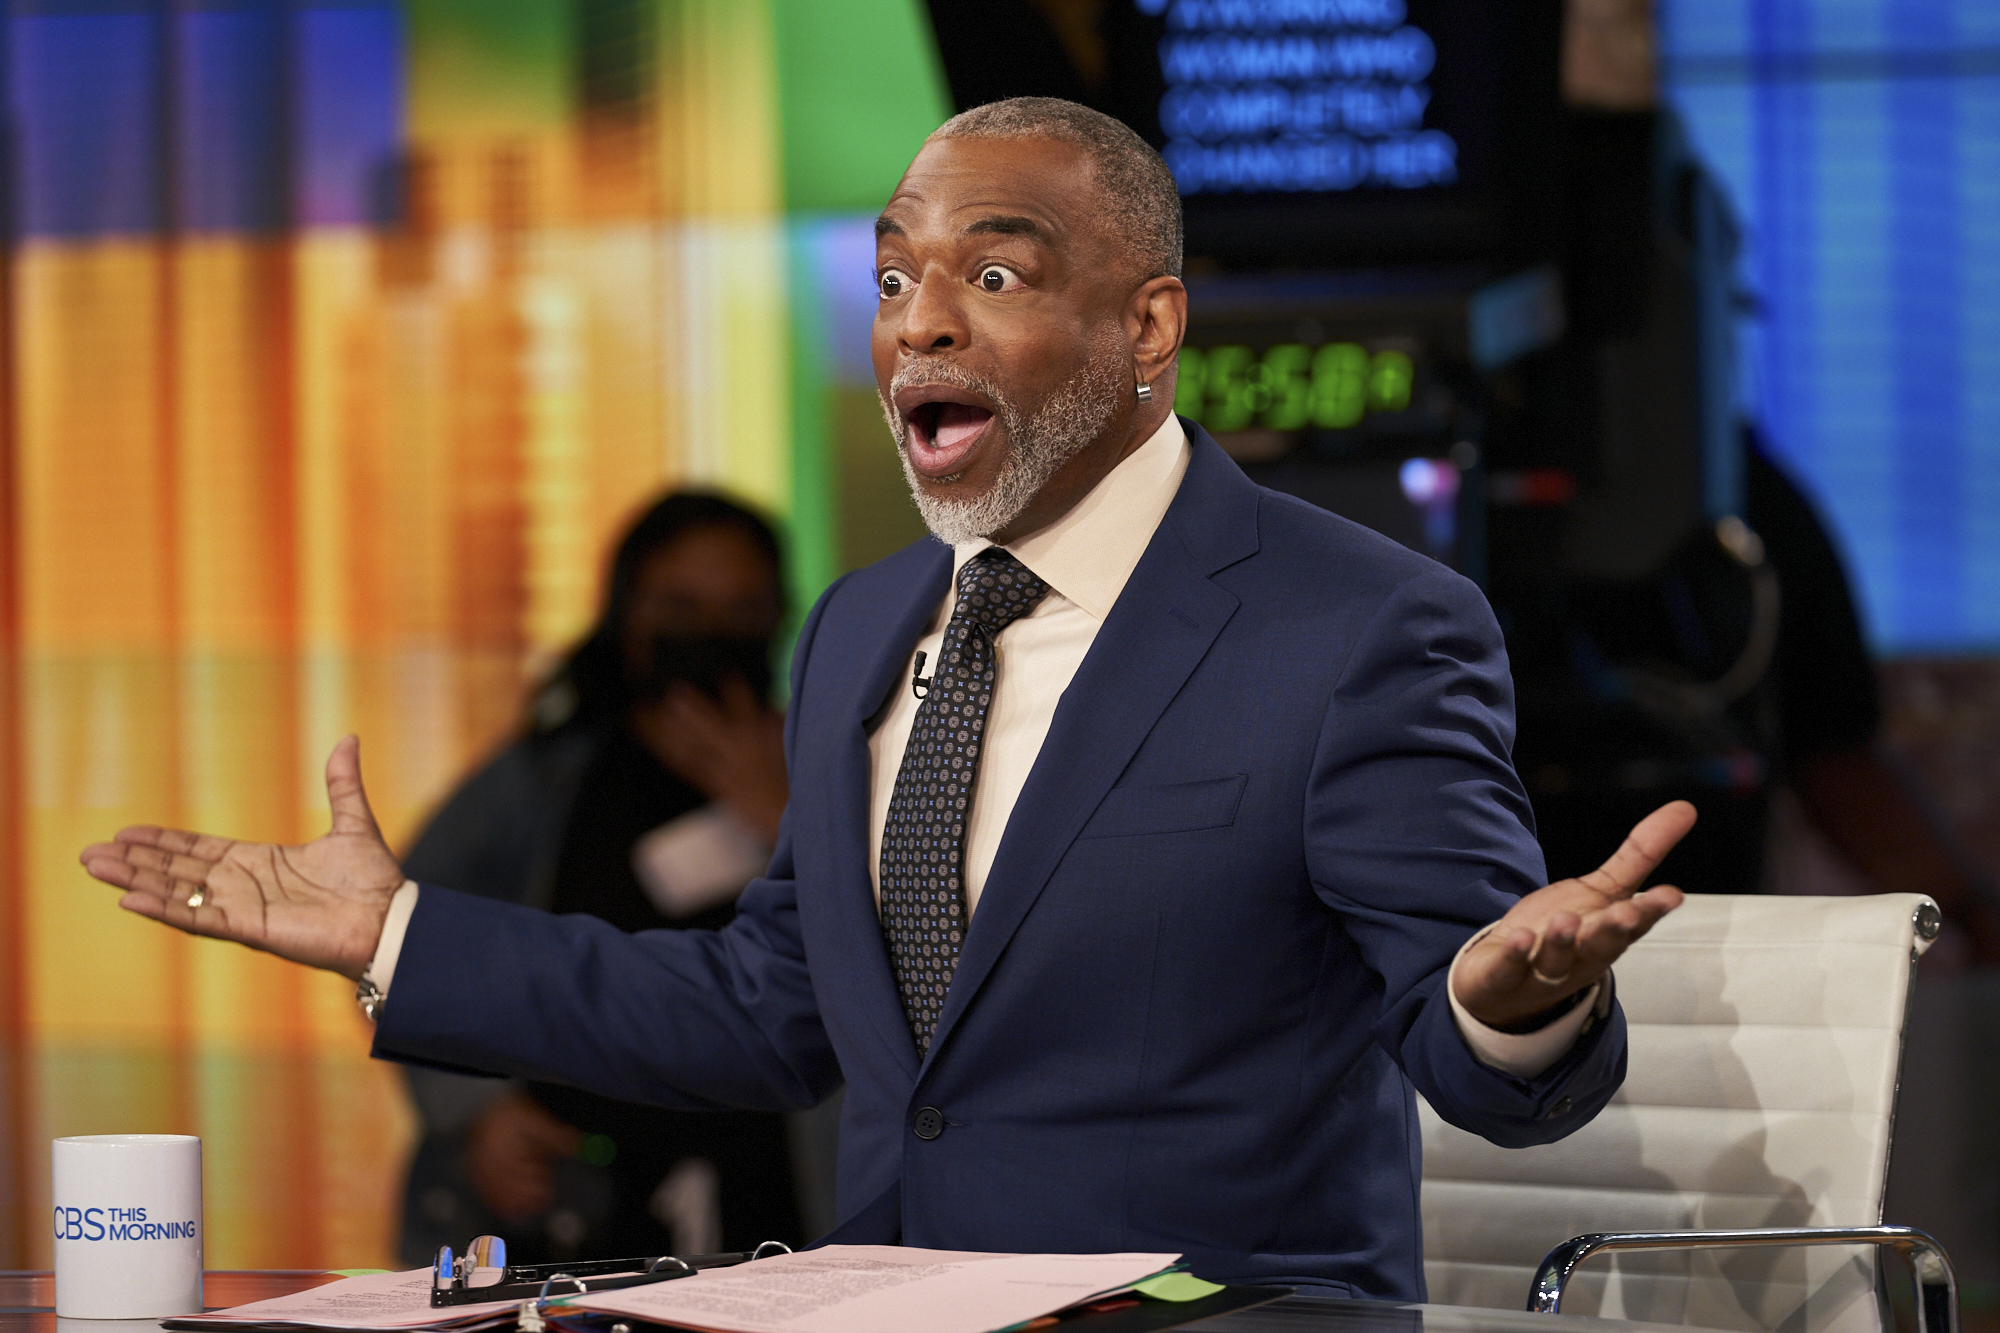 Actor LeVar Burton wears a suit and a mock surprise expression with his arms outstretched as he guest-hosts 'CBS This Morning' in May, 2021